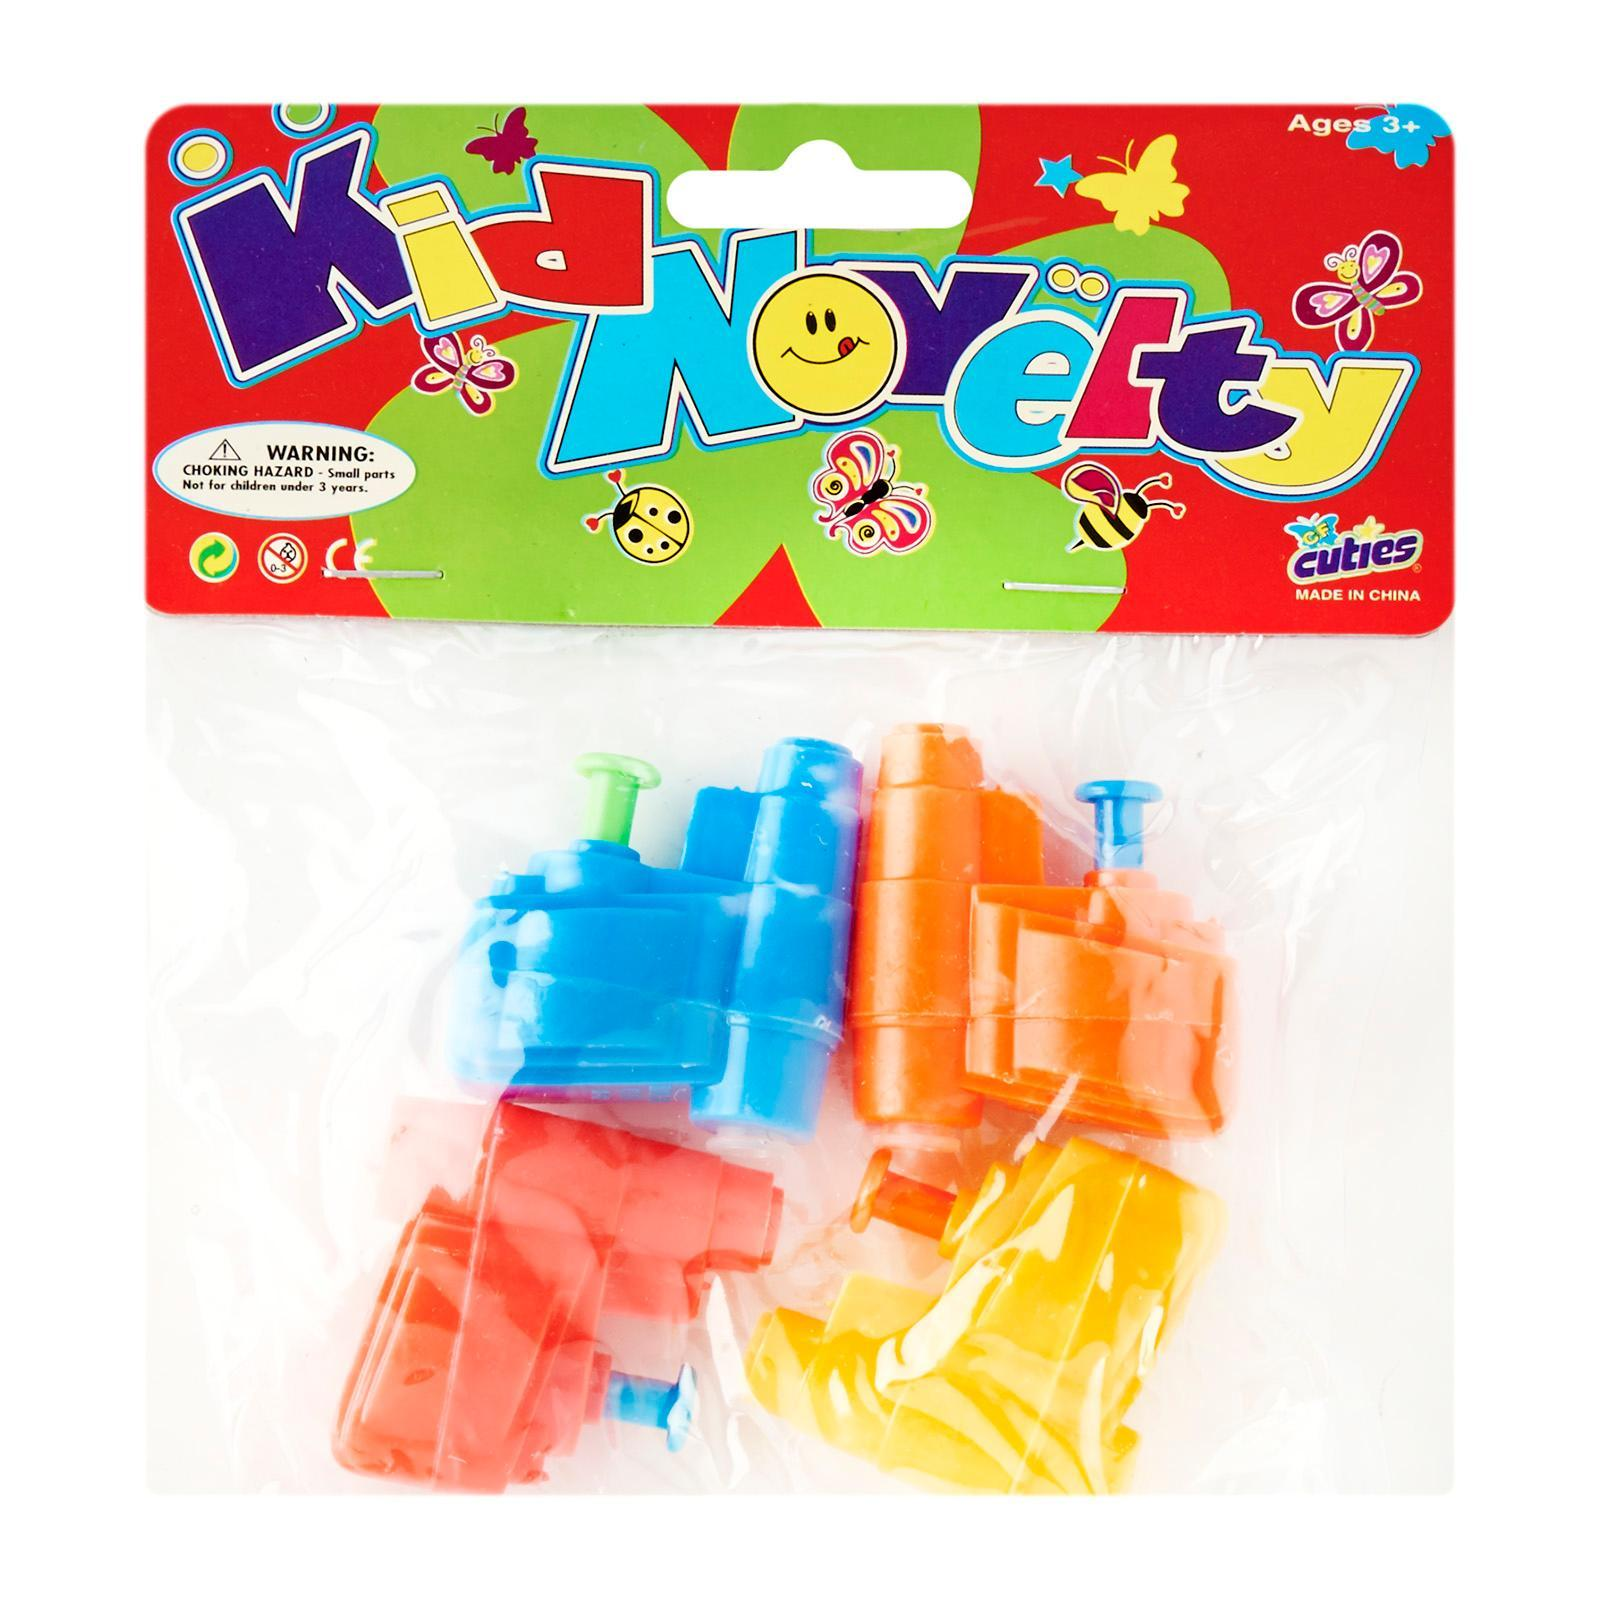 Partyforte Water Gun 4S Toy Packs